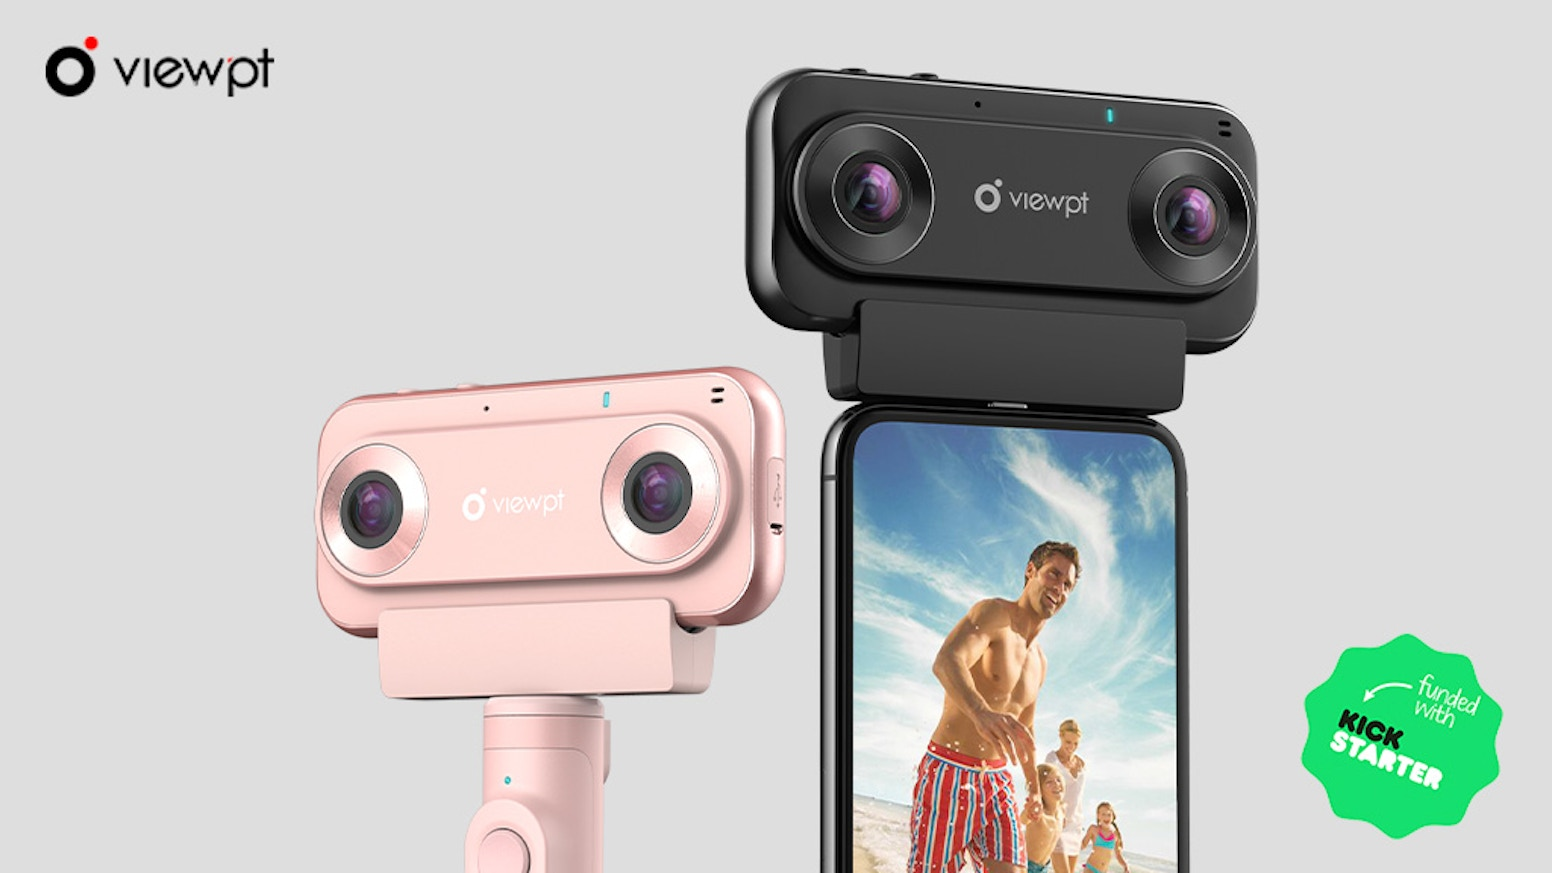 The Most Incredible Live Streaming & Capture 4k@30FPS Video VR180 Camera, Compatible with Google VR180 Specifications